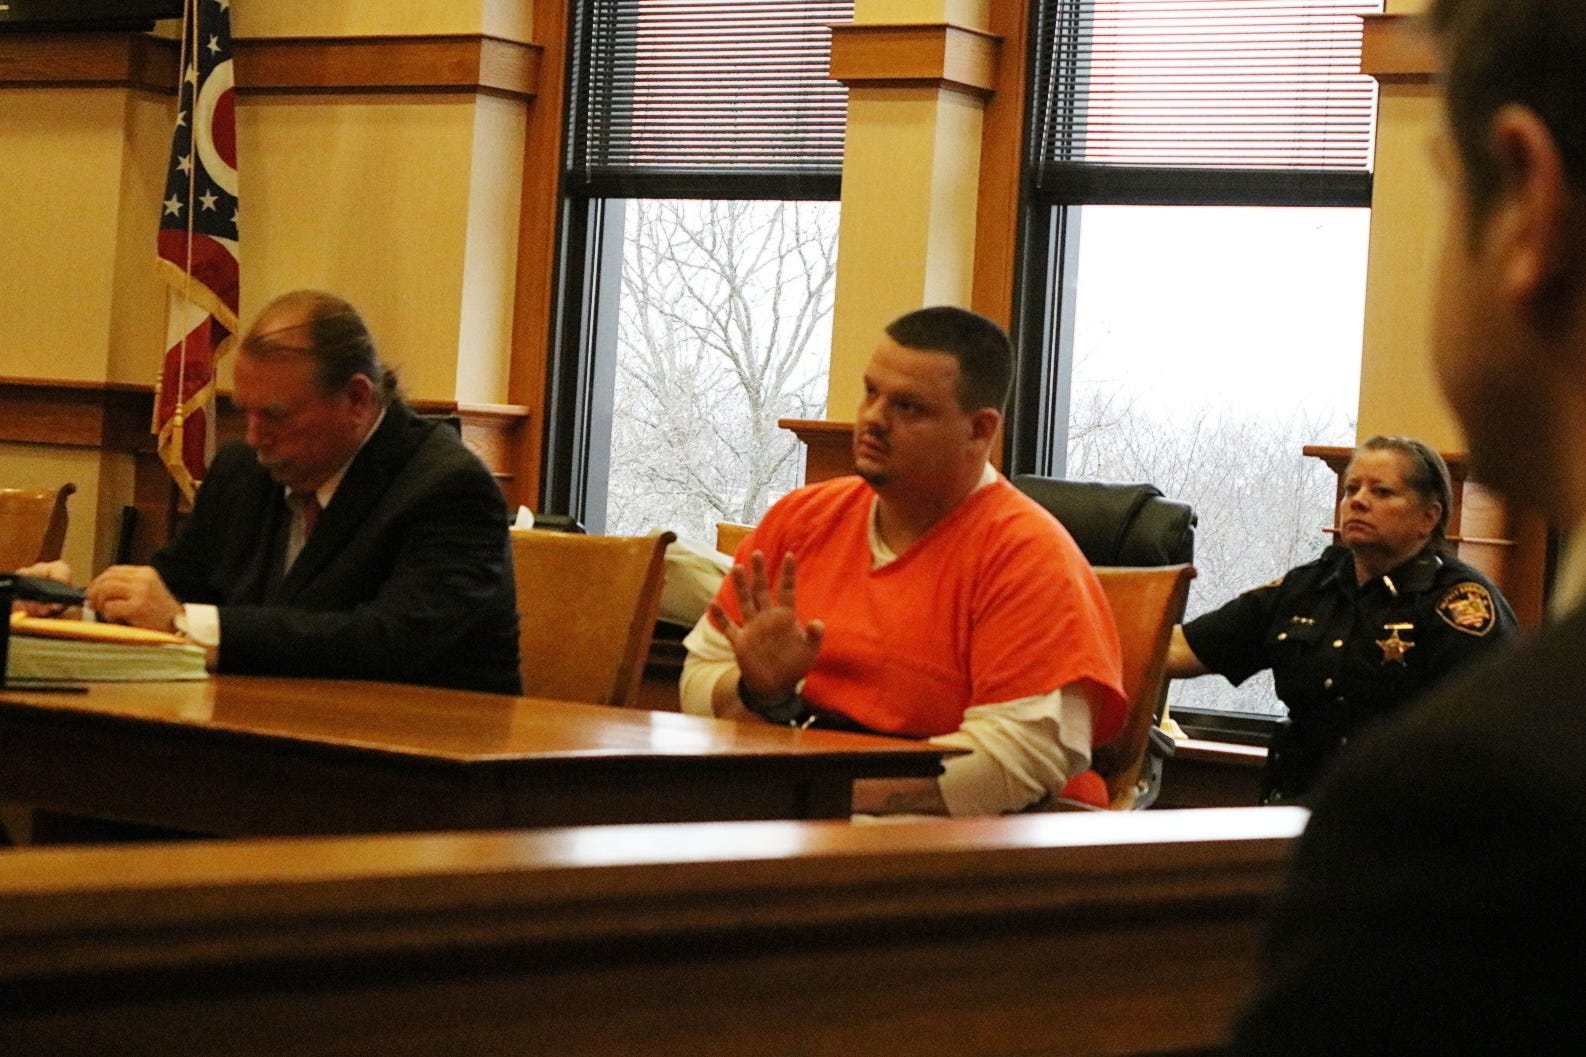 Cody Habel, 27, was sentenced to 33 years in prison after pleading guilty to the rape of a 5-year-old child.